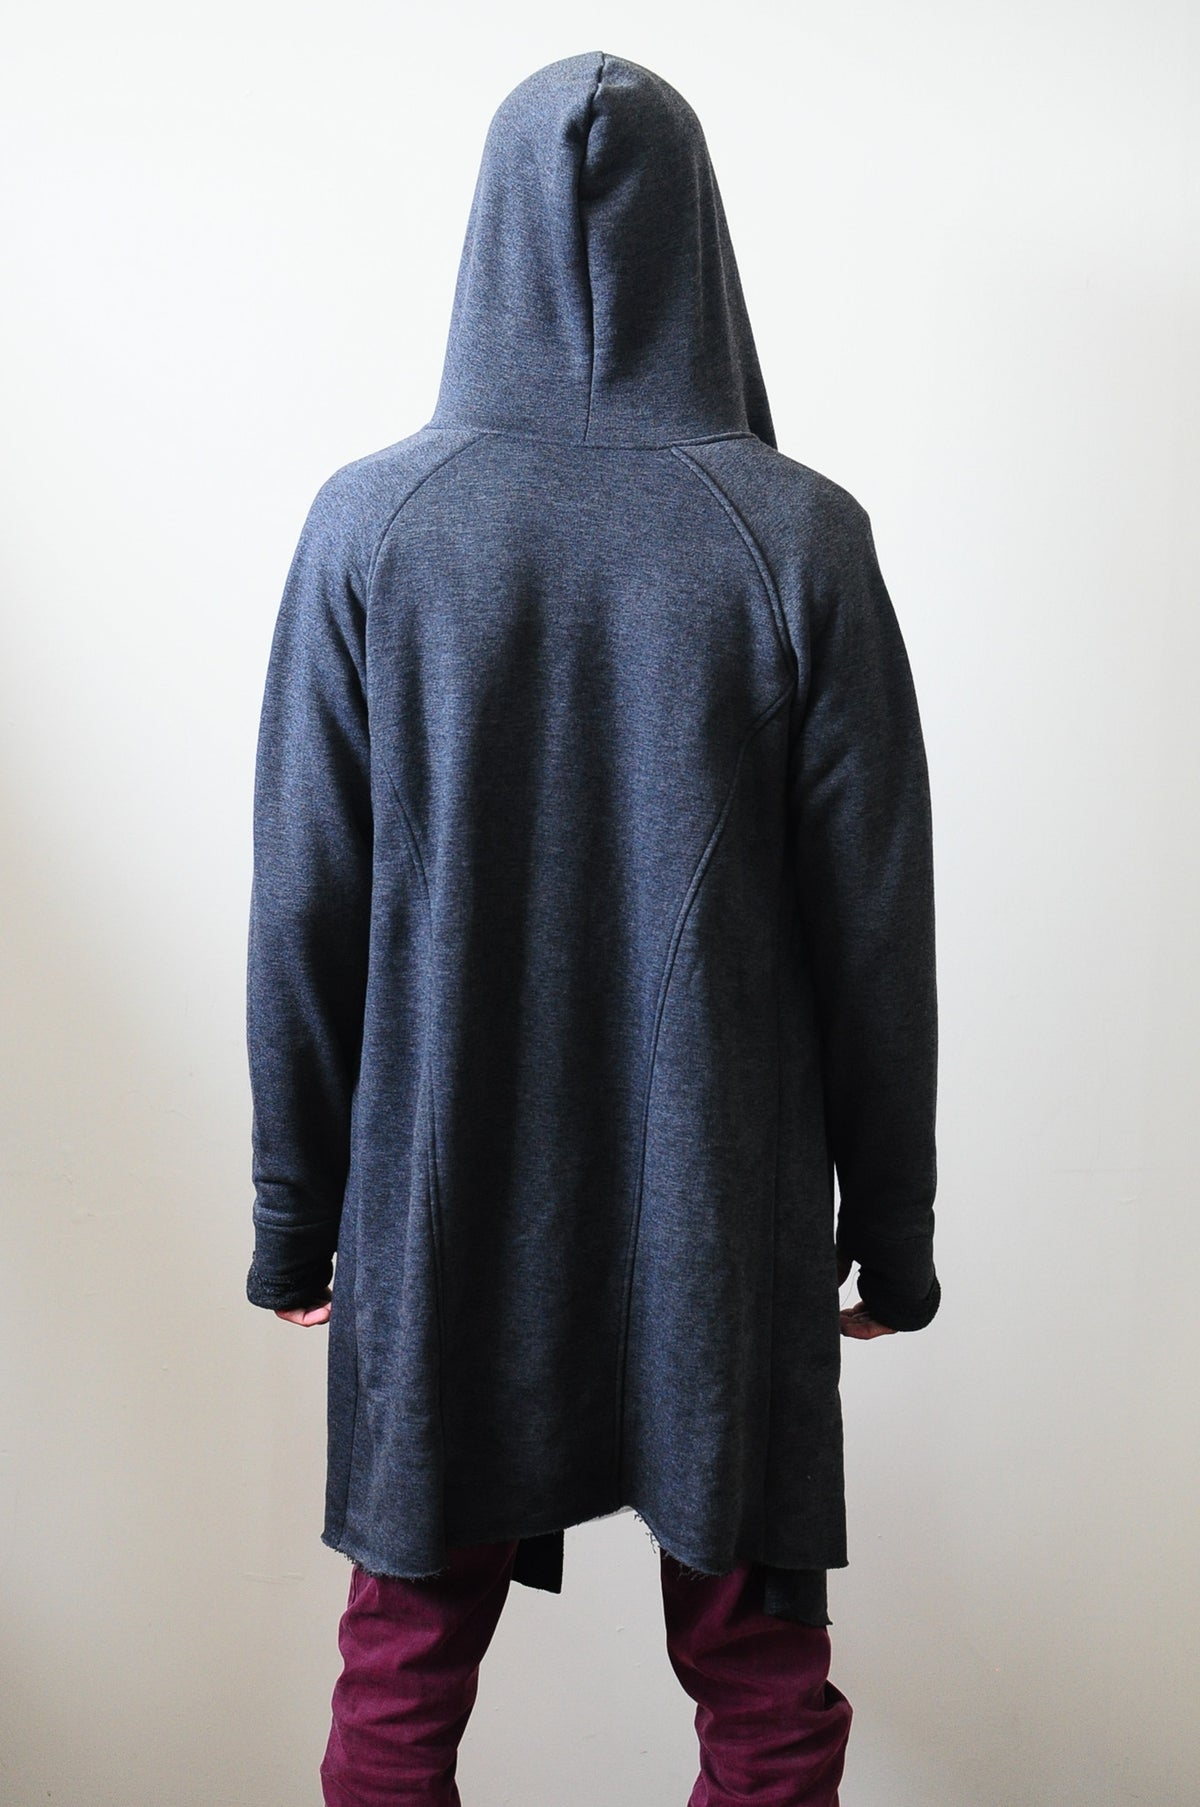 Smoke Long Sweater Cardigan With Hood / Glove Sleeves - Seam Details - LONG ASYMMETRIC CUT